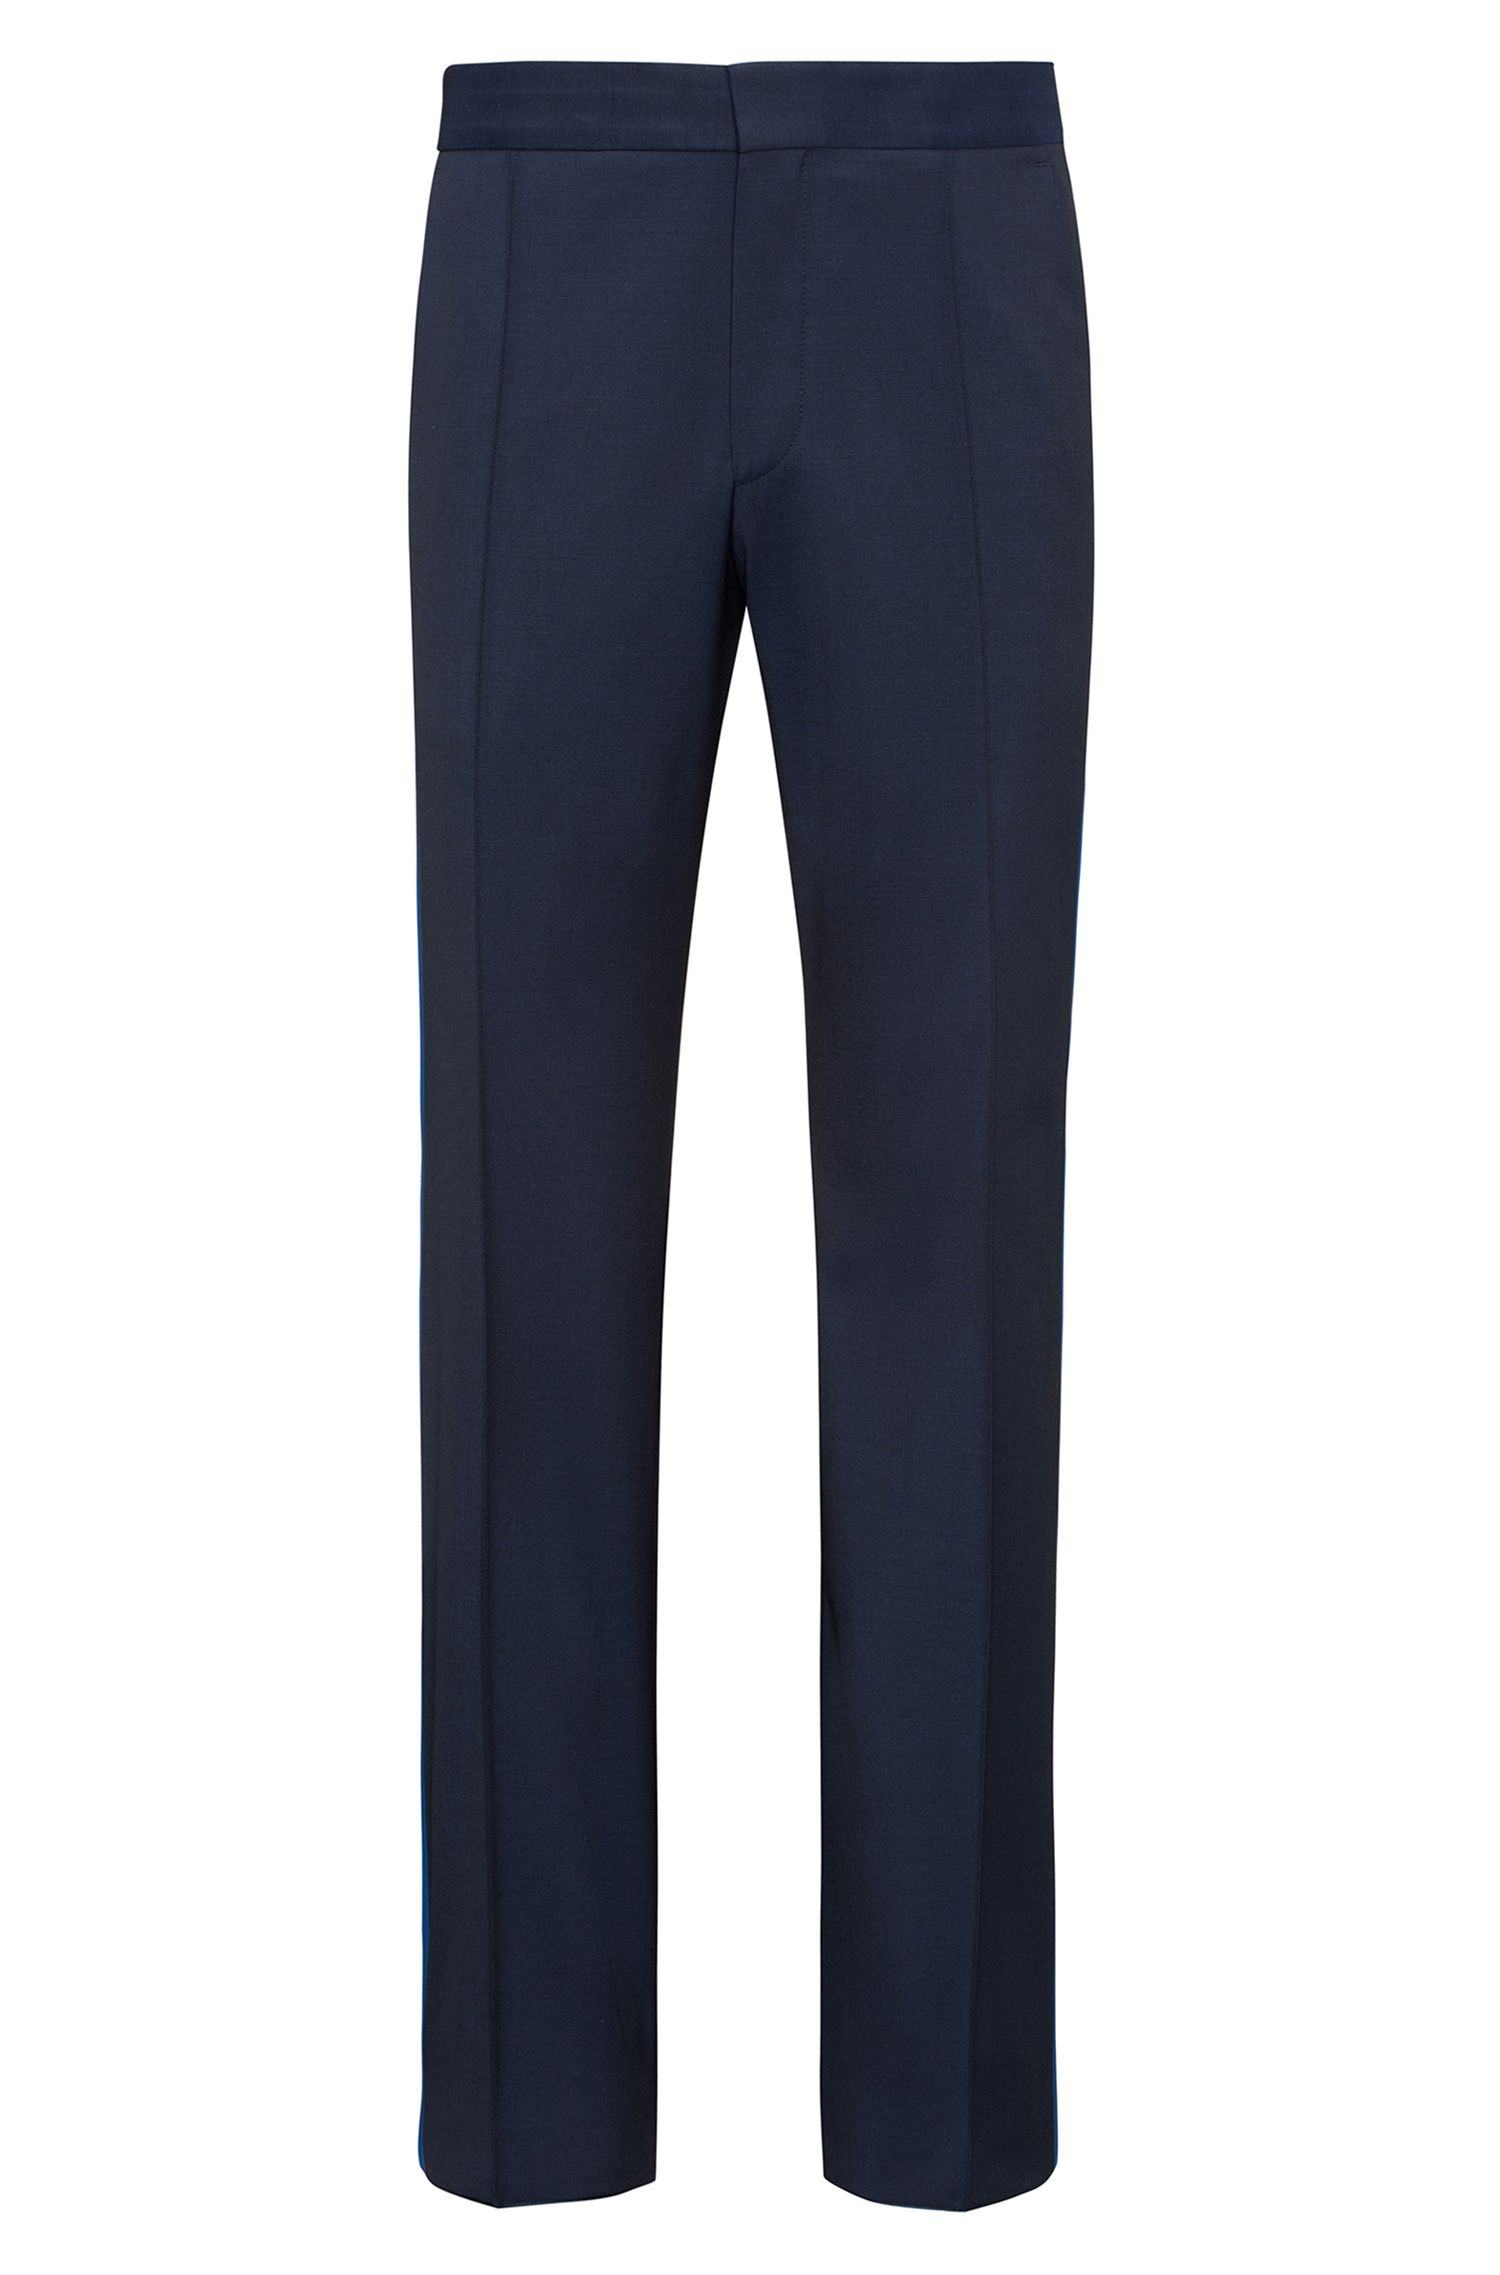 Virgin Wool Dress Pant, Oversized Fit | Fedo